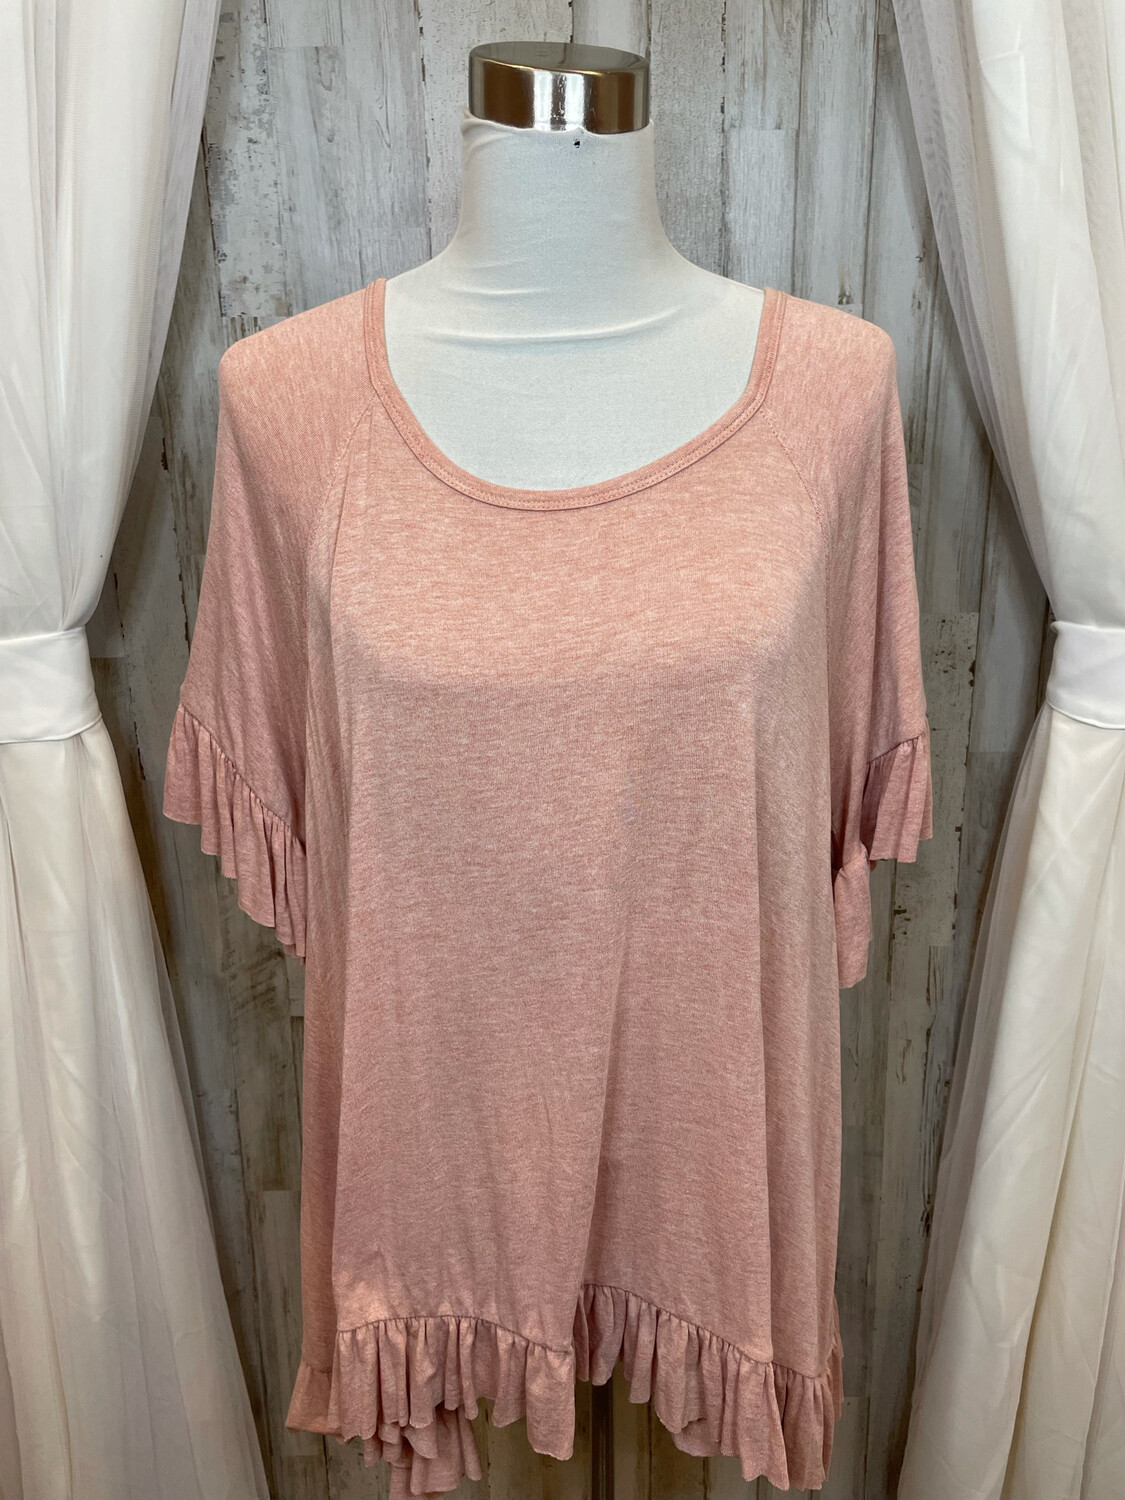 Easel Pink Ruffled Top - S